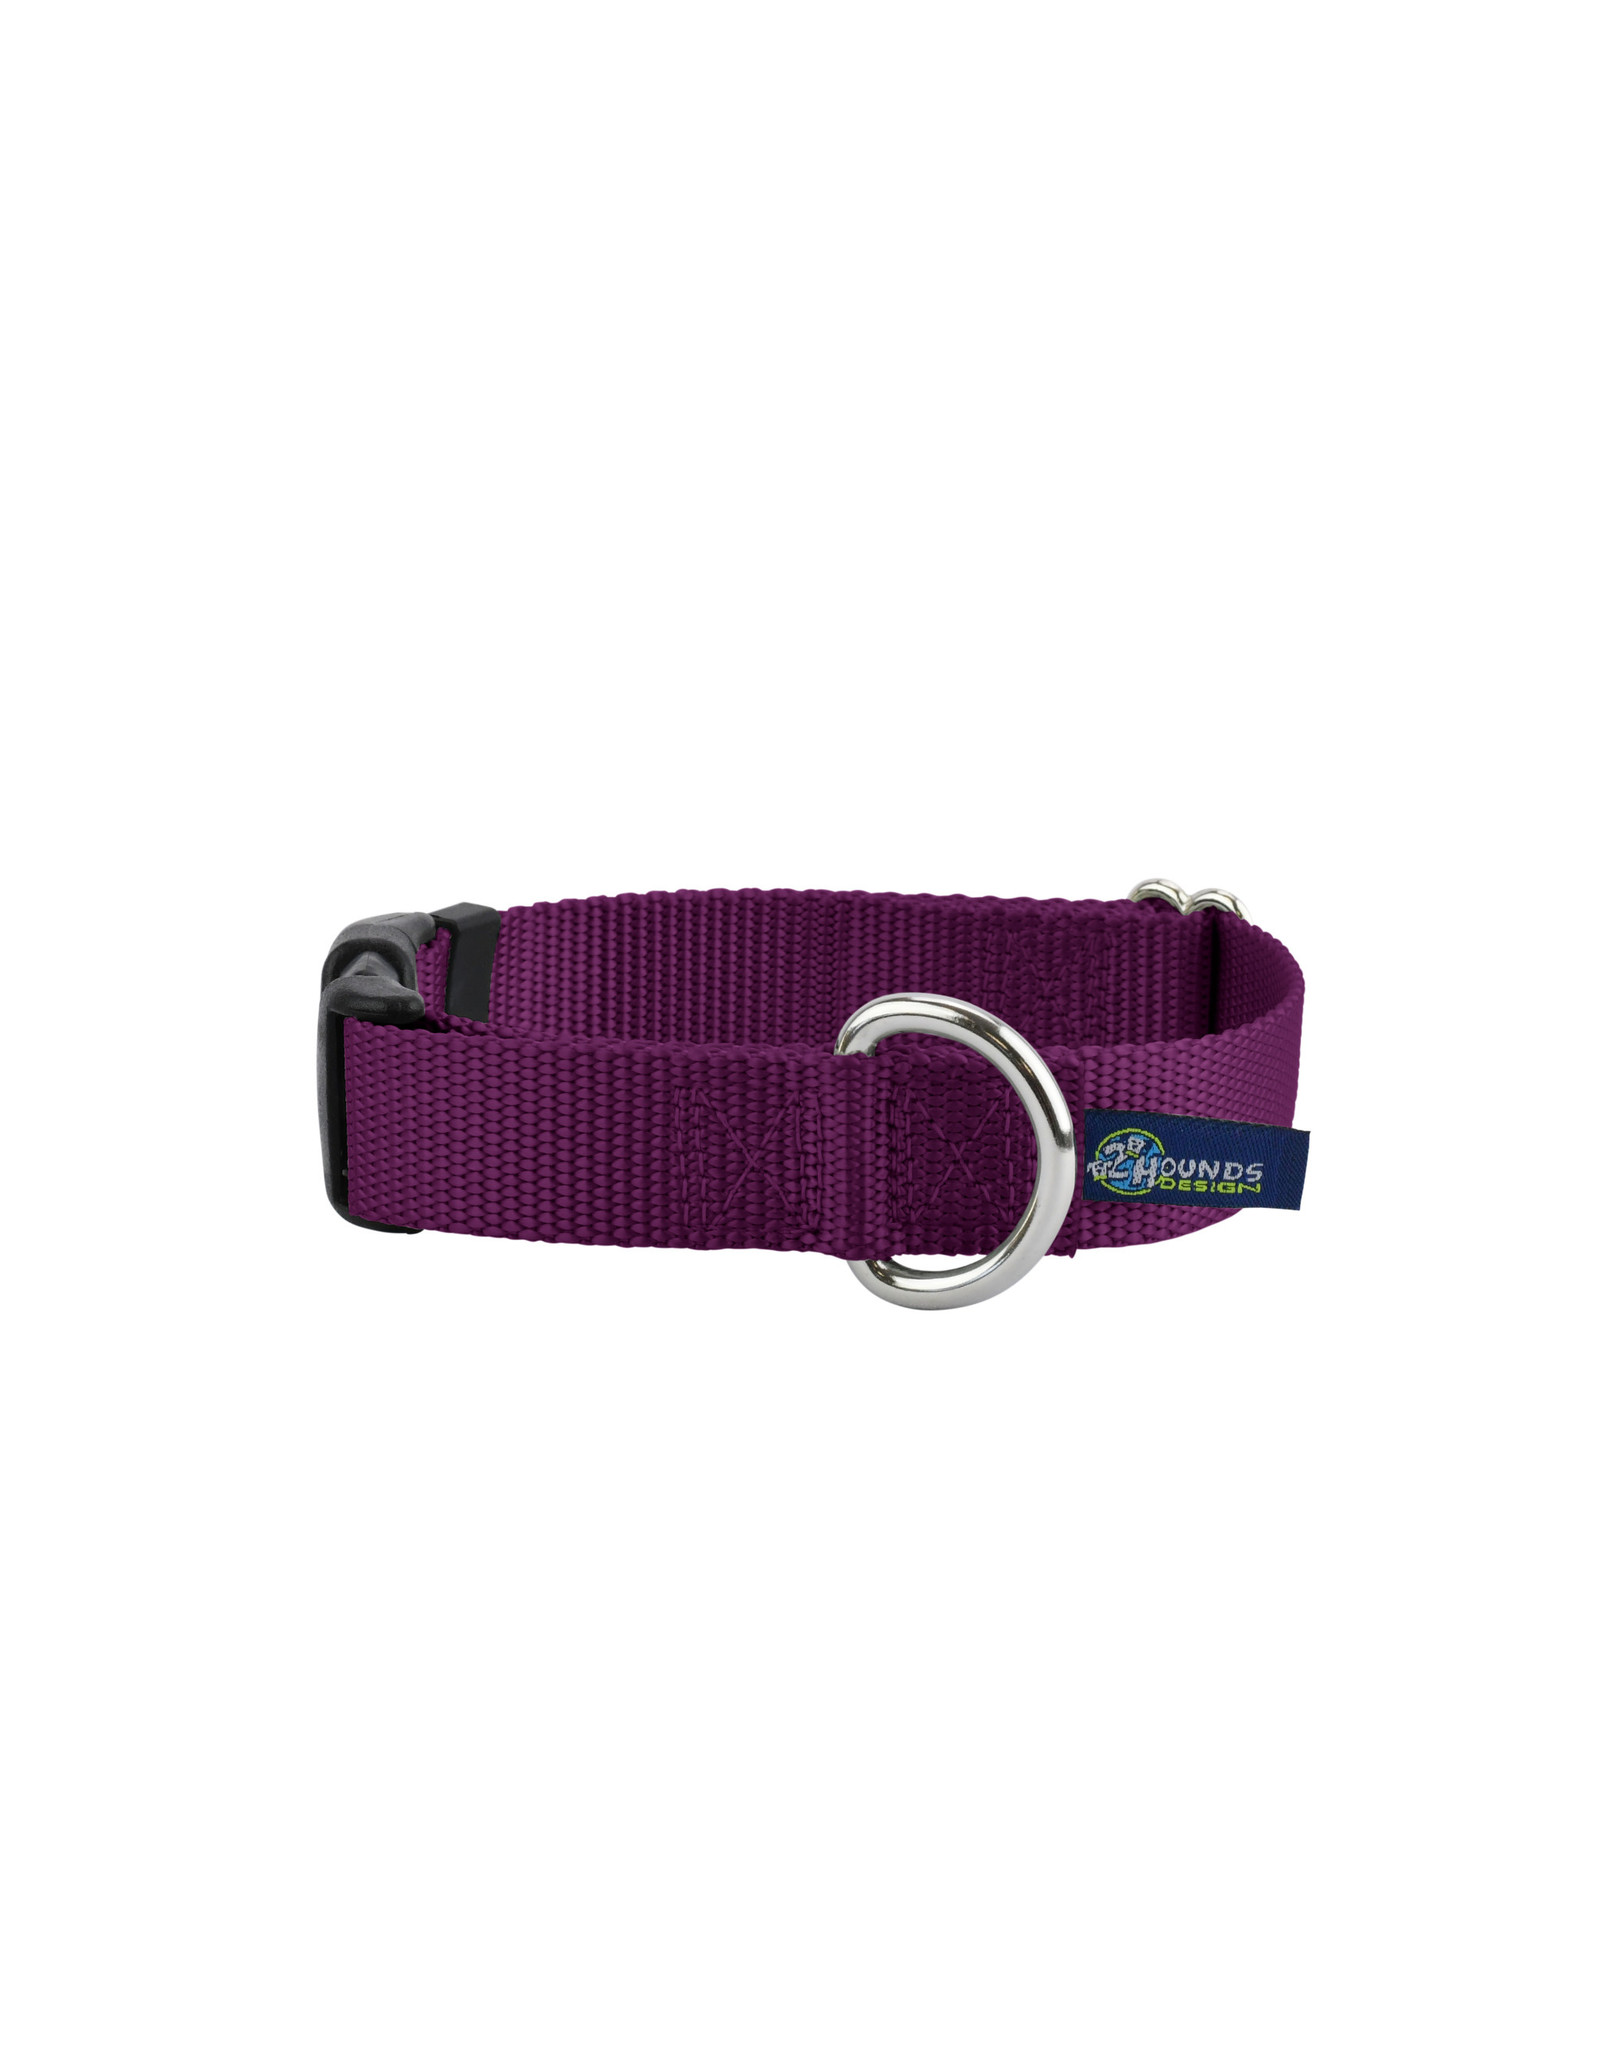 "2 Hounds Design Buckle Collar: Burgundy, 5/8"" M"